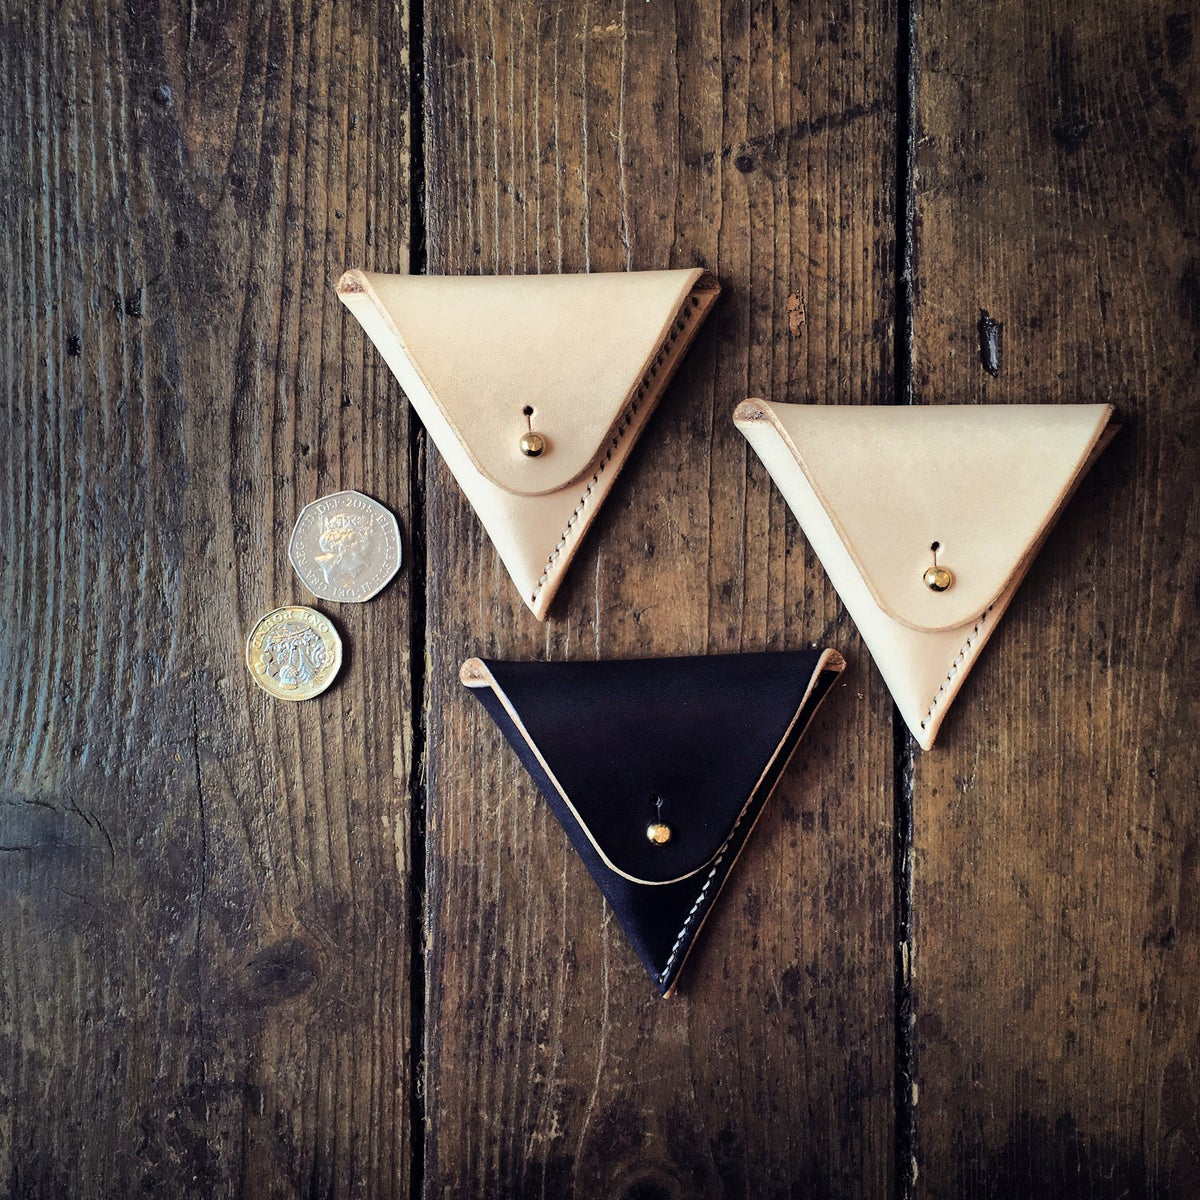 Image of Triangle Coin Case by Ruth Pullan.